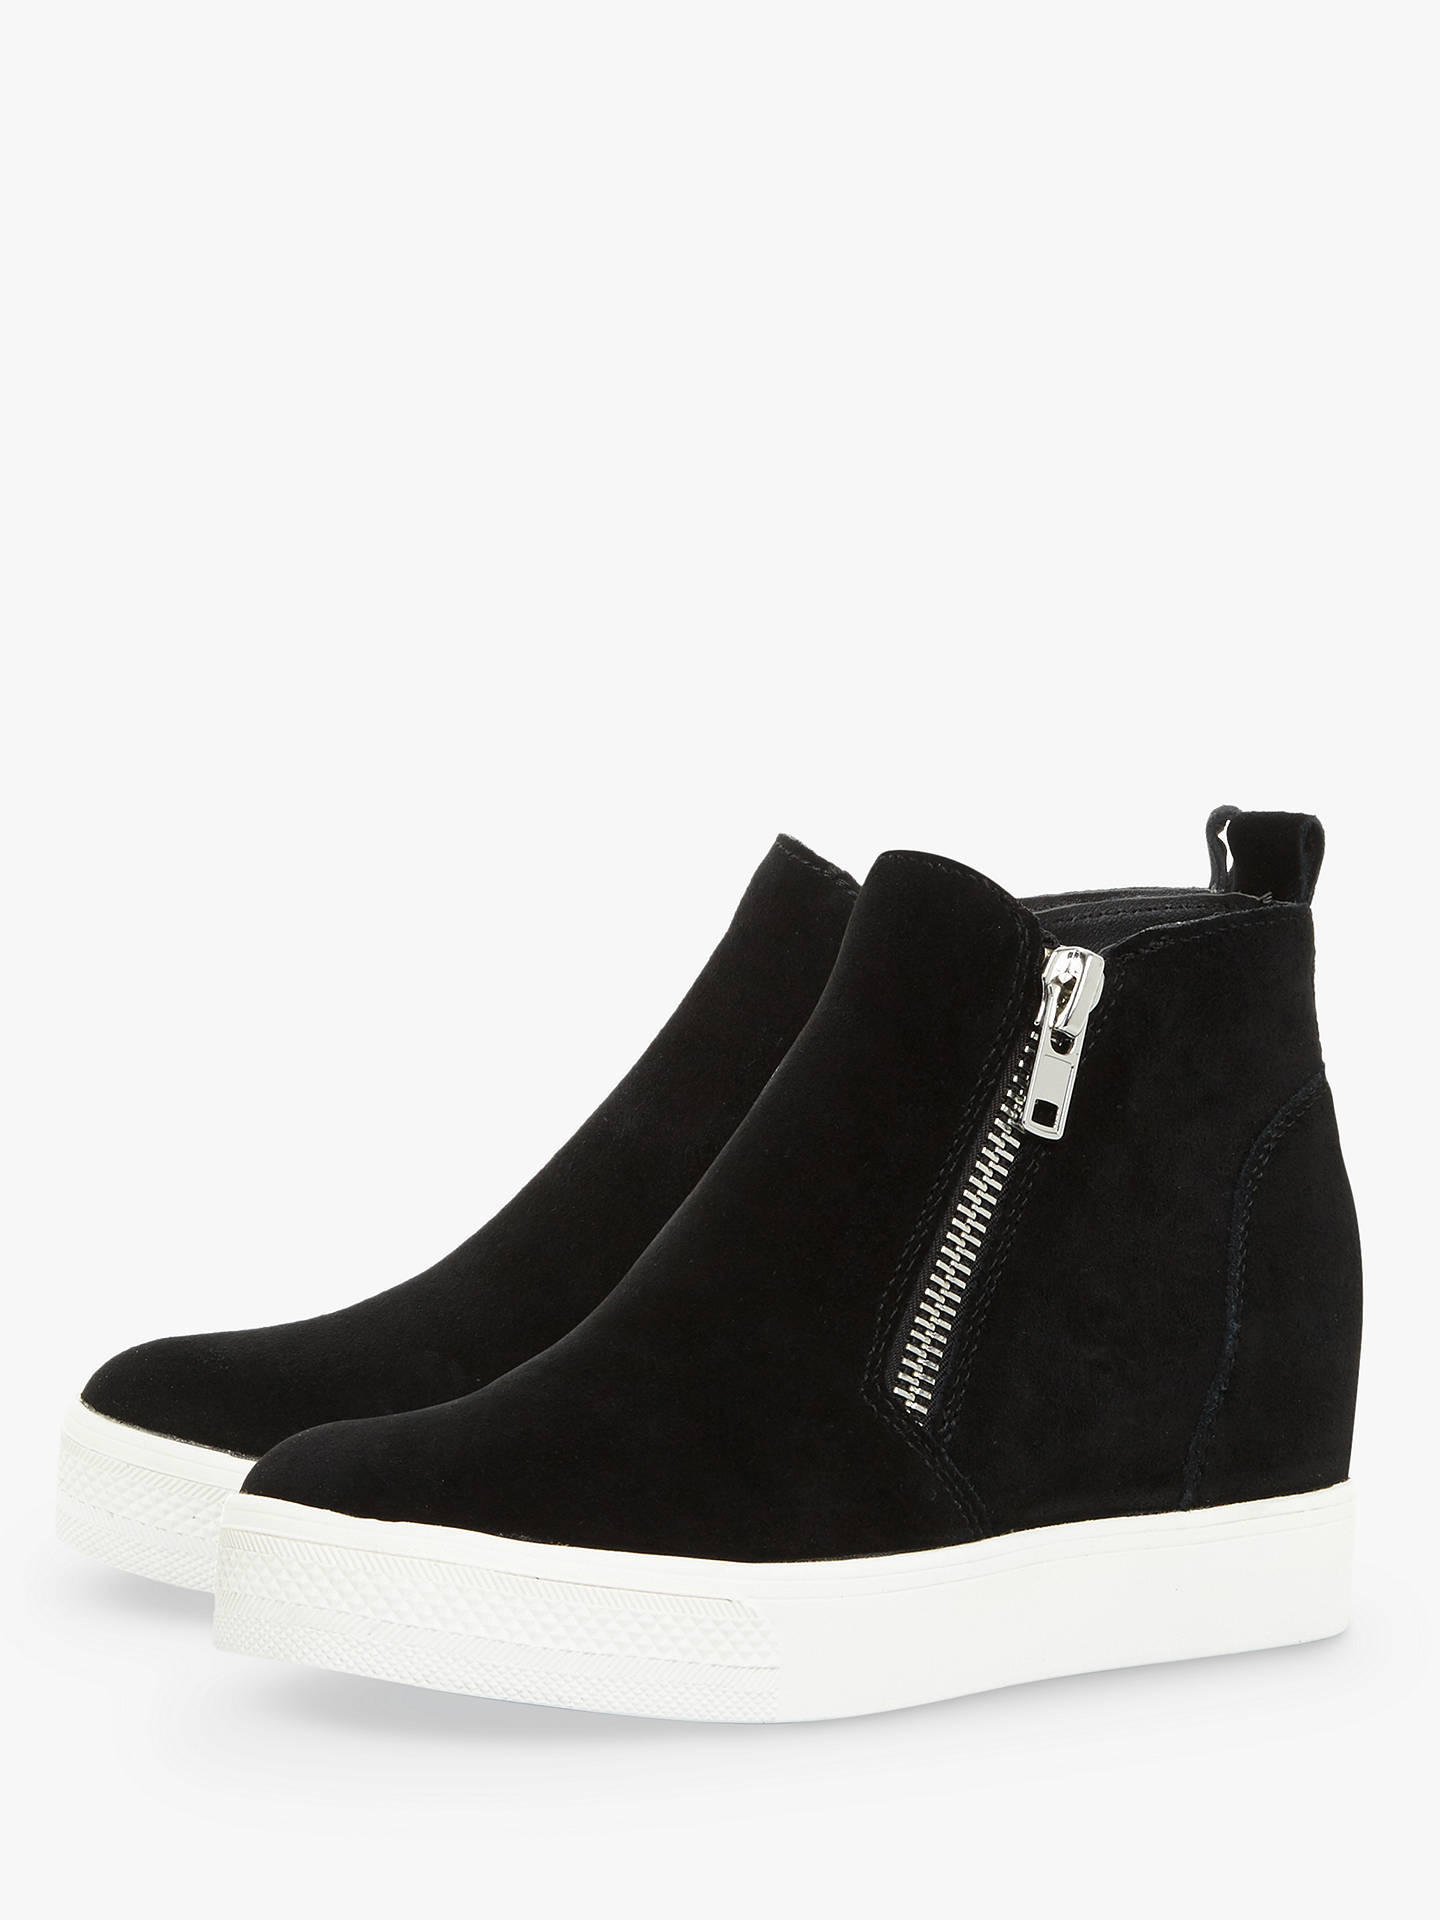 Buy Steve Madden Wedgie SM Zip Wedge Trainers, Black Suede, 3 Online at johnlewis.com